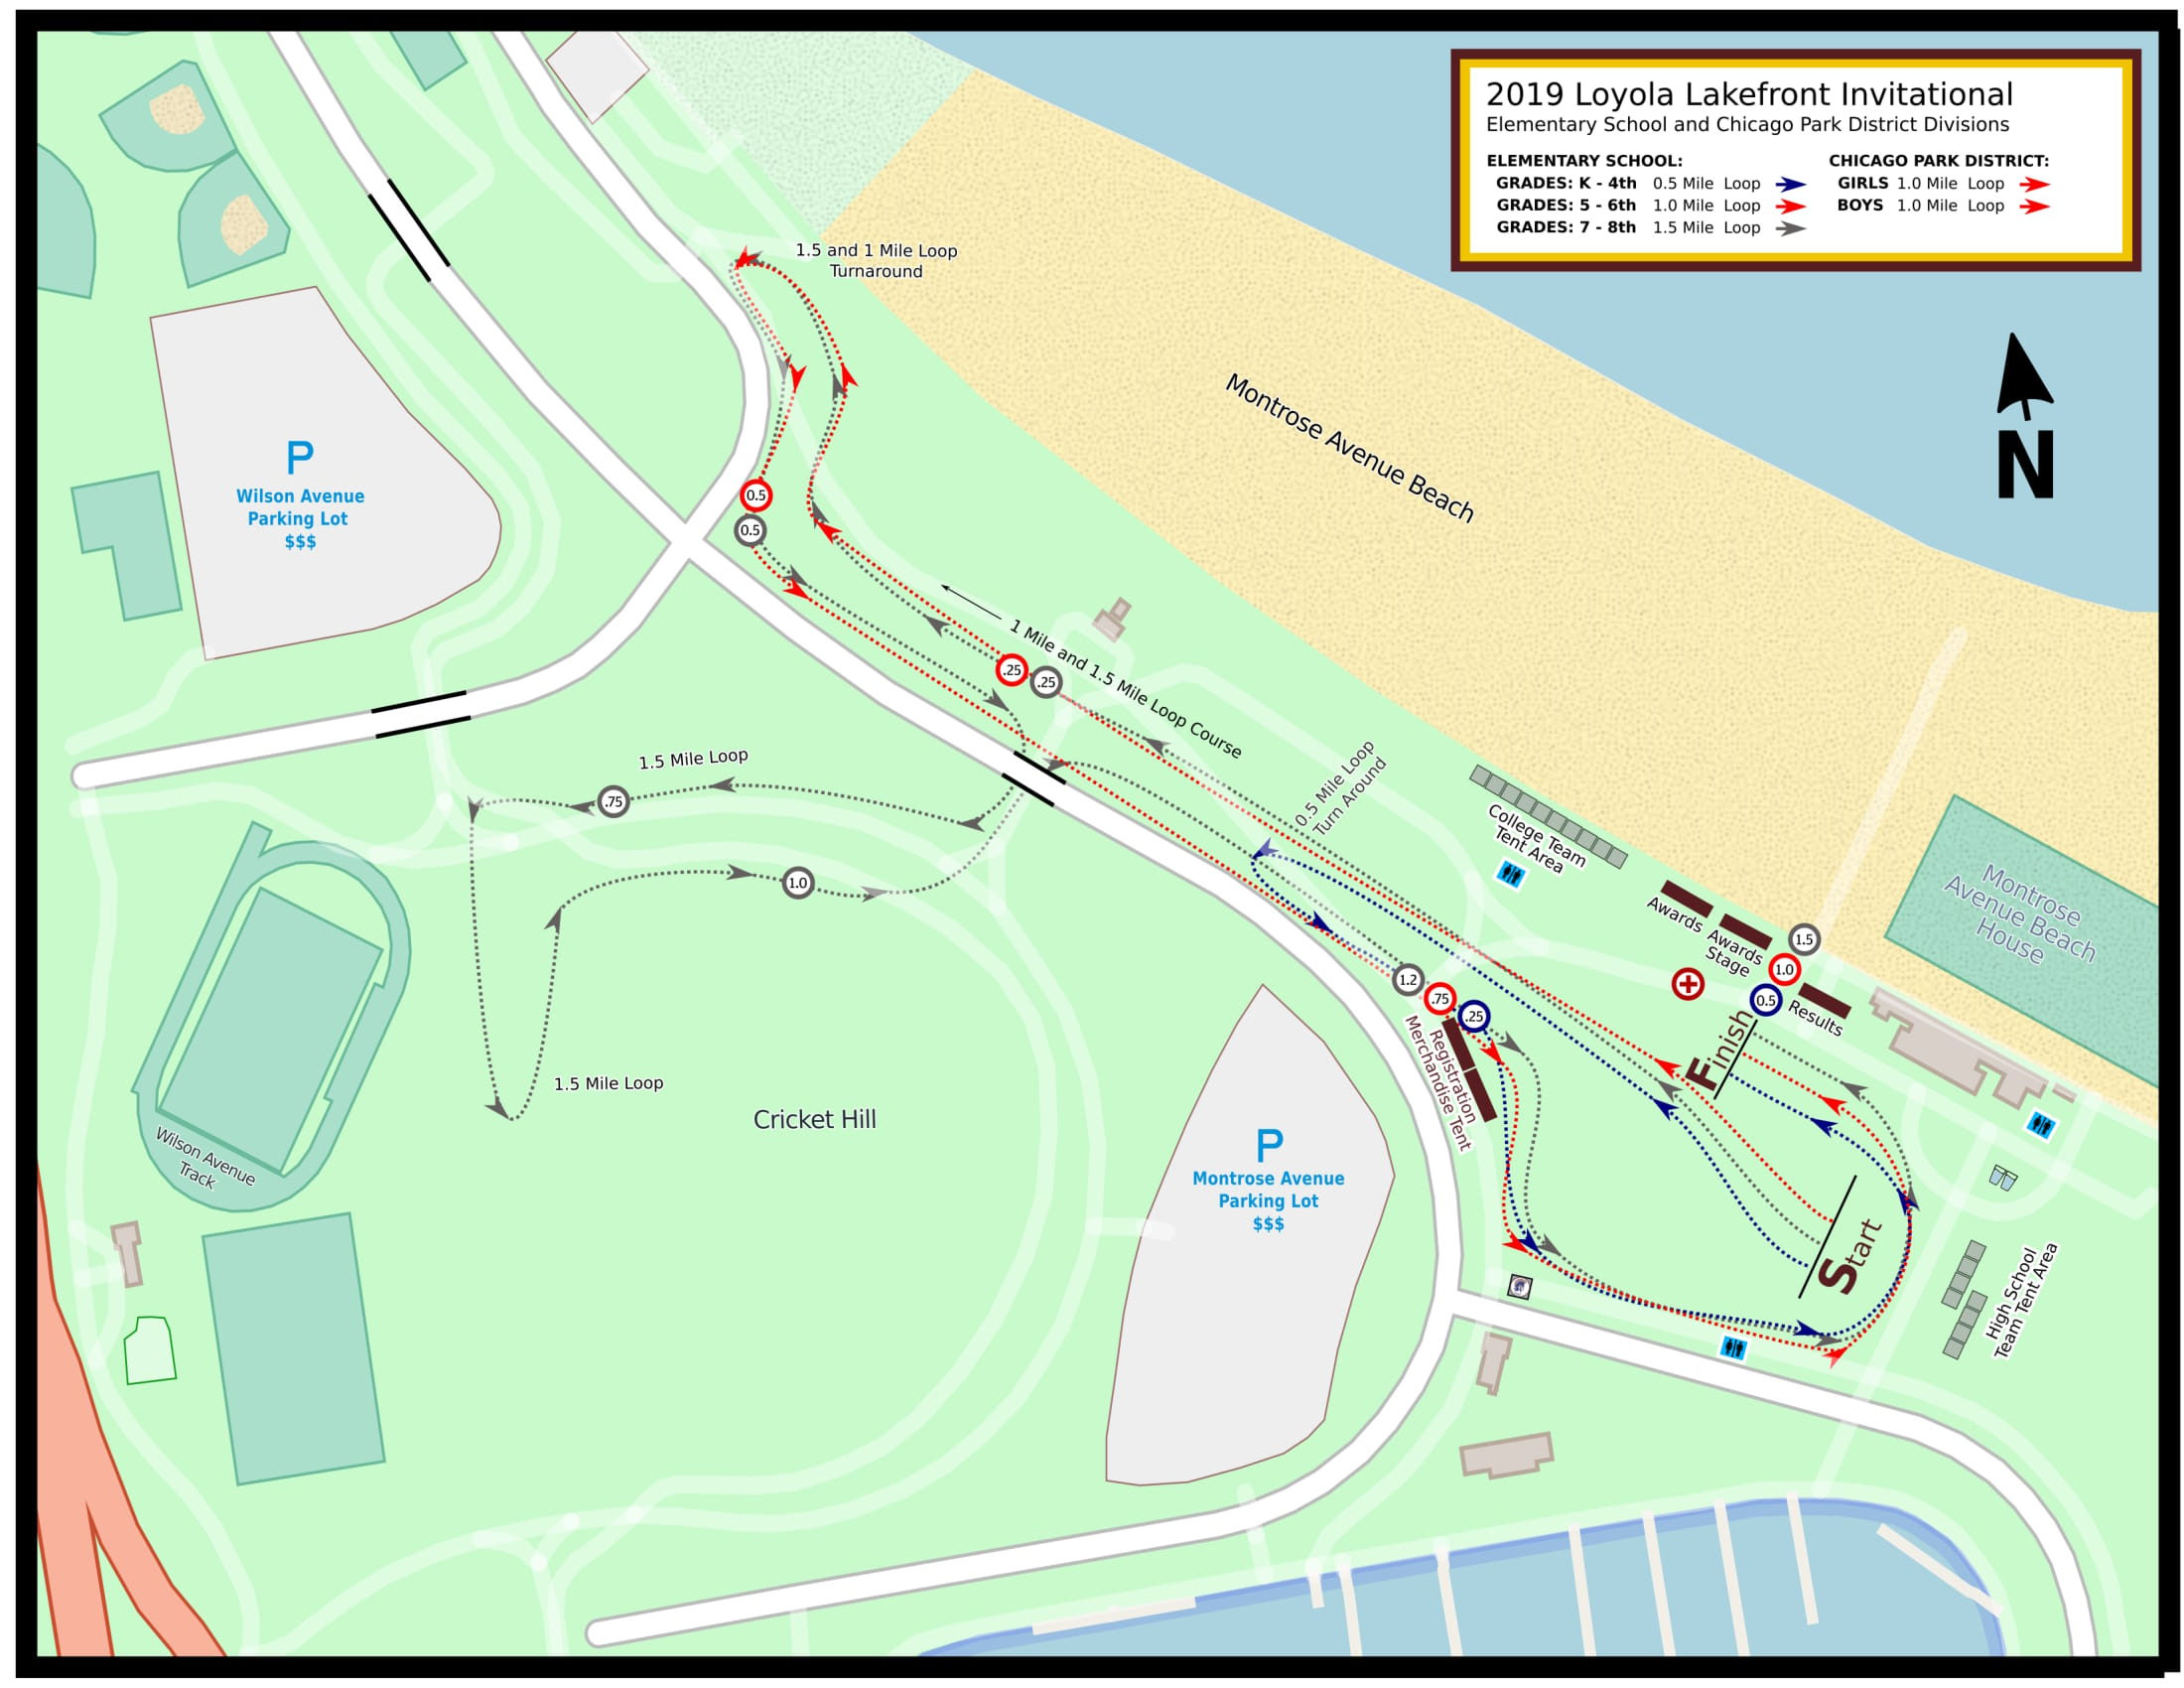 Course Map for the 2019 Loyola Lakefront Cross County Invitational - Elementary Division